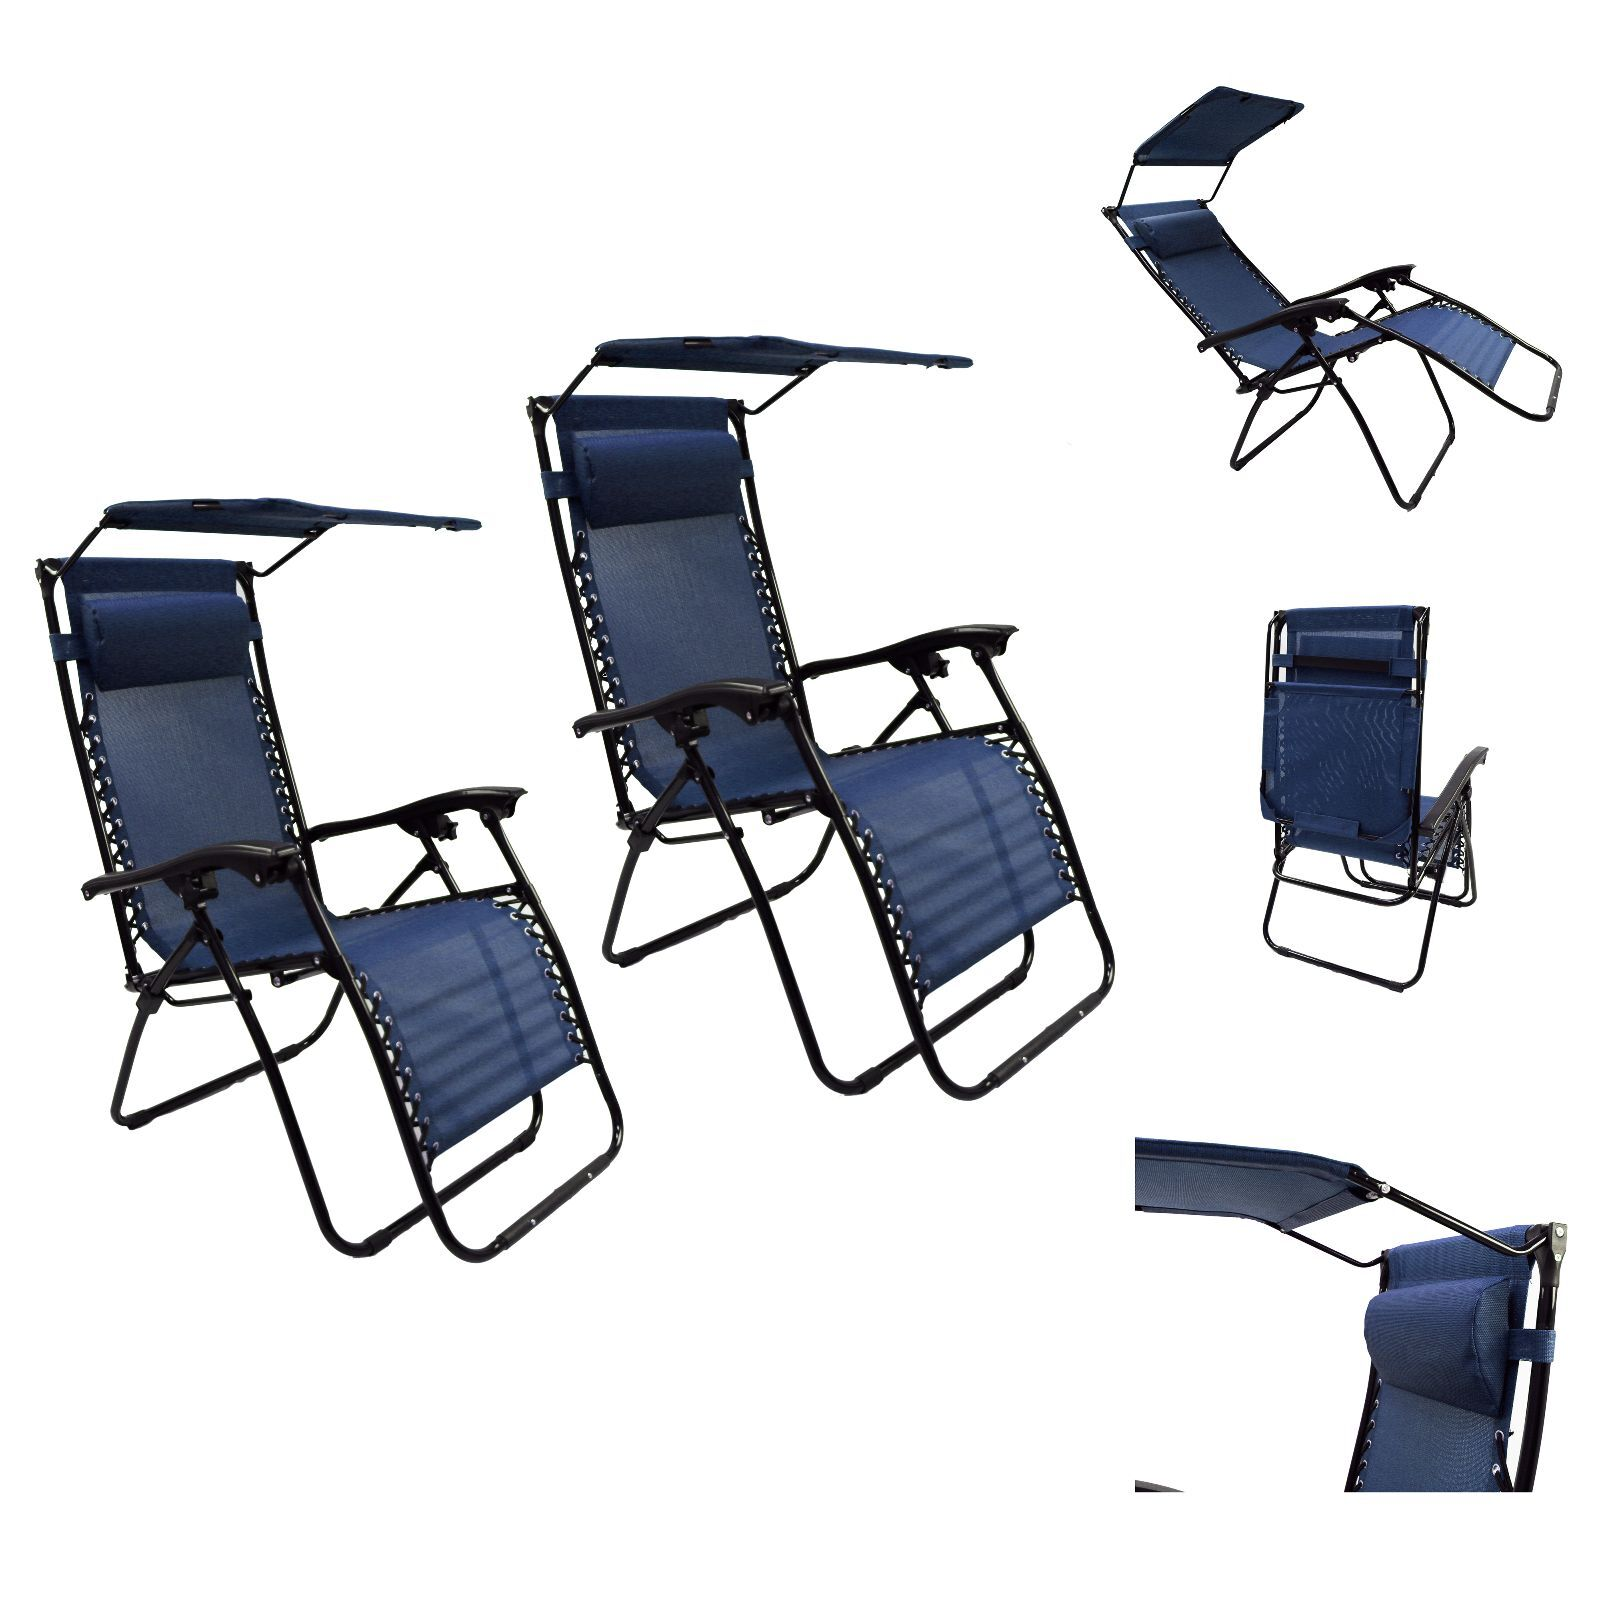 Fold Up Beach Chairs Patio Lounge Chair With Sunshade And Pillow Pool Beach